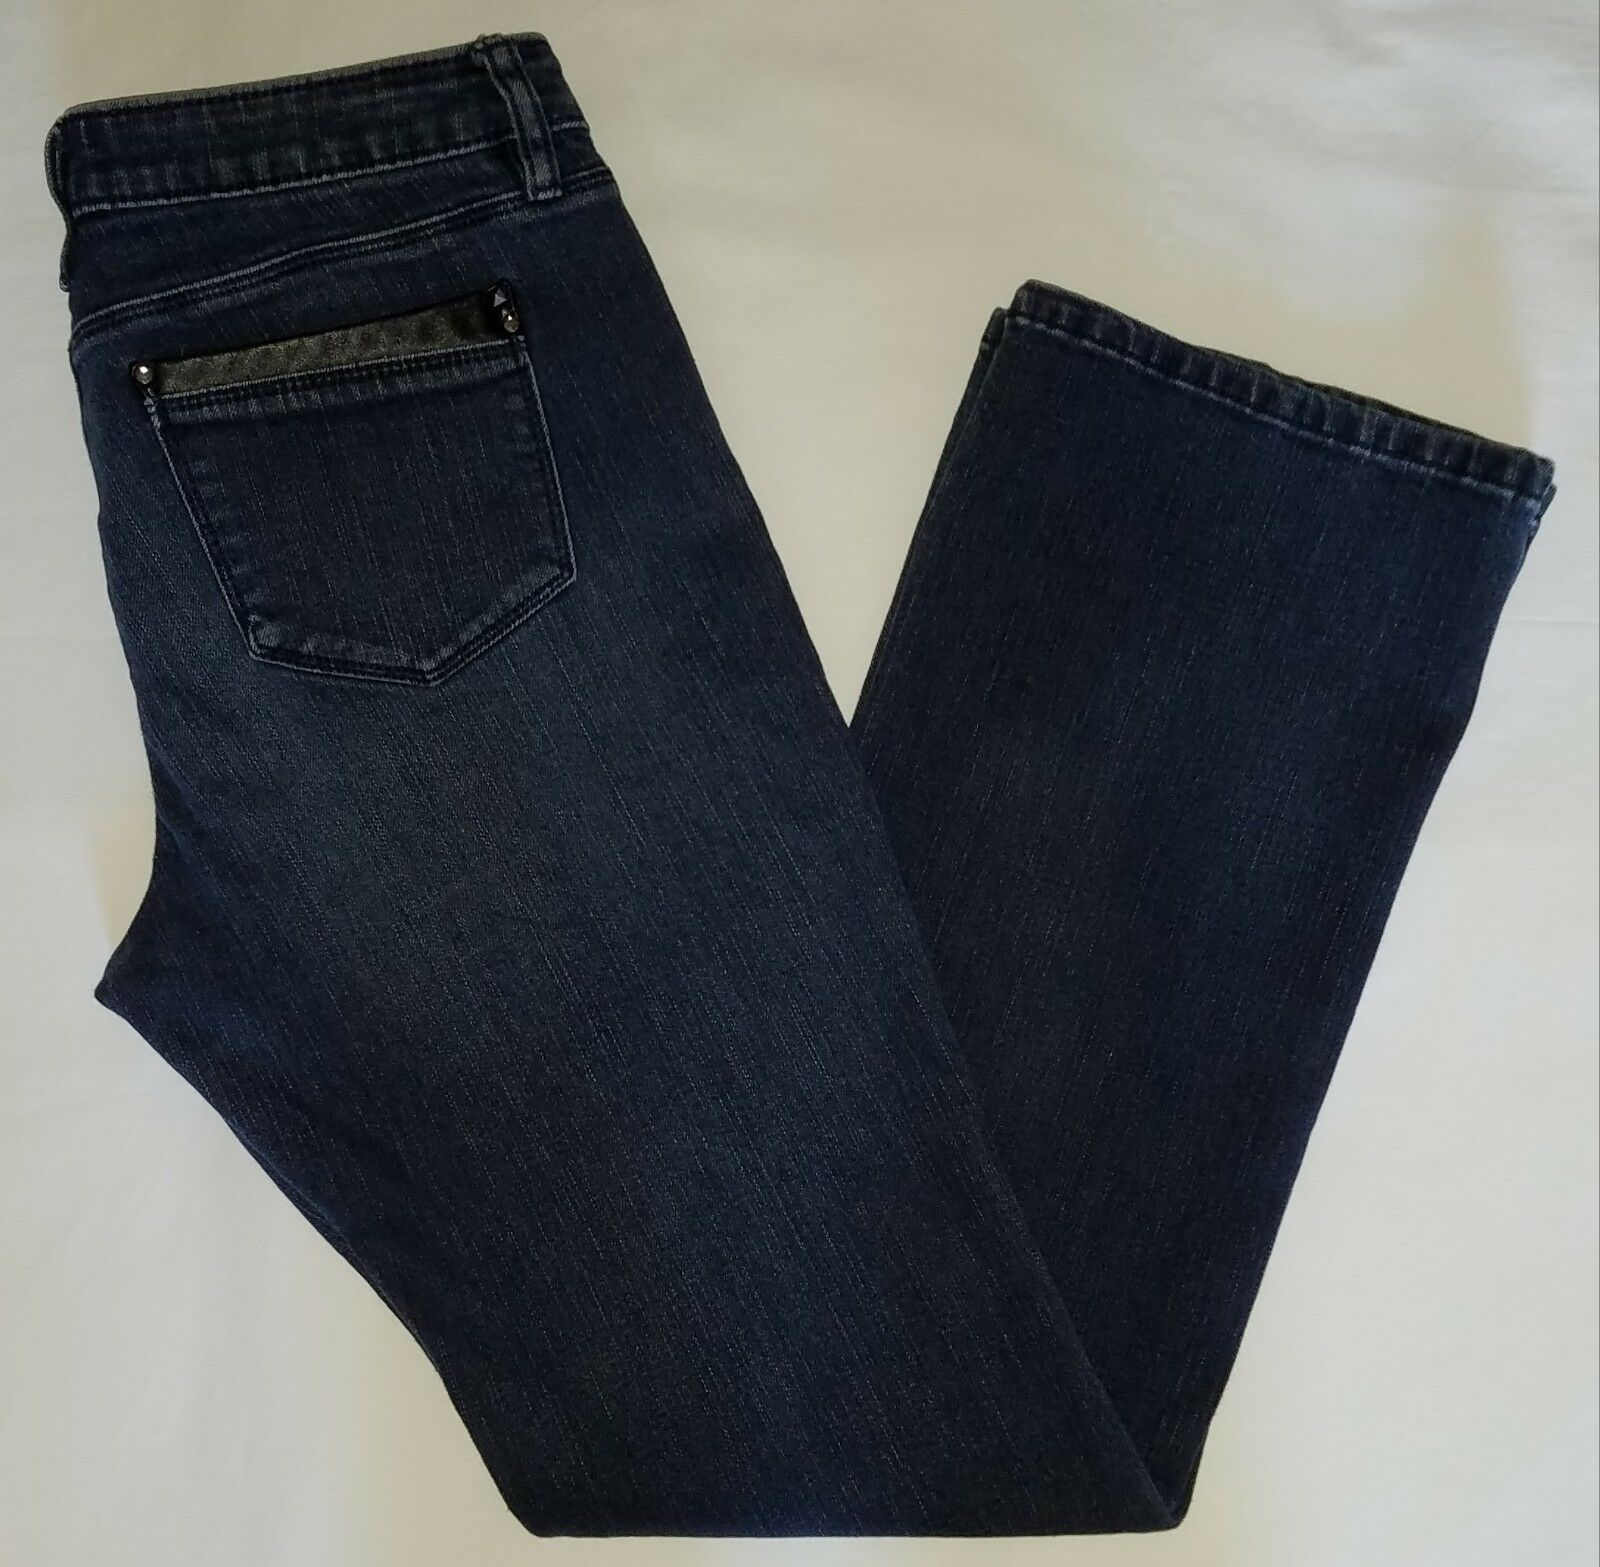 Womens apt. 9 baby boot modern style denim jeans size 6